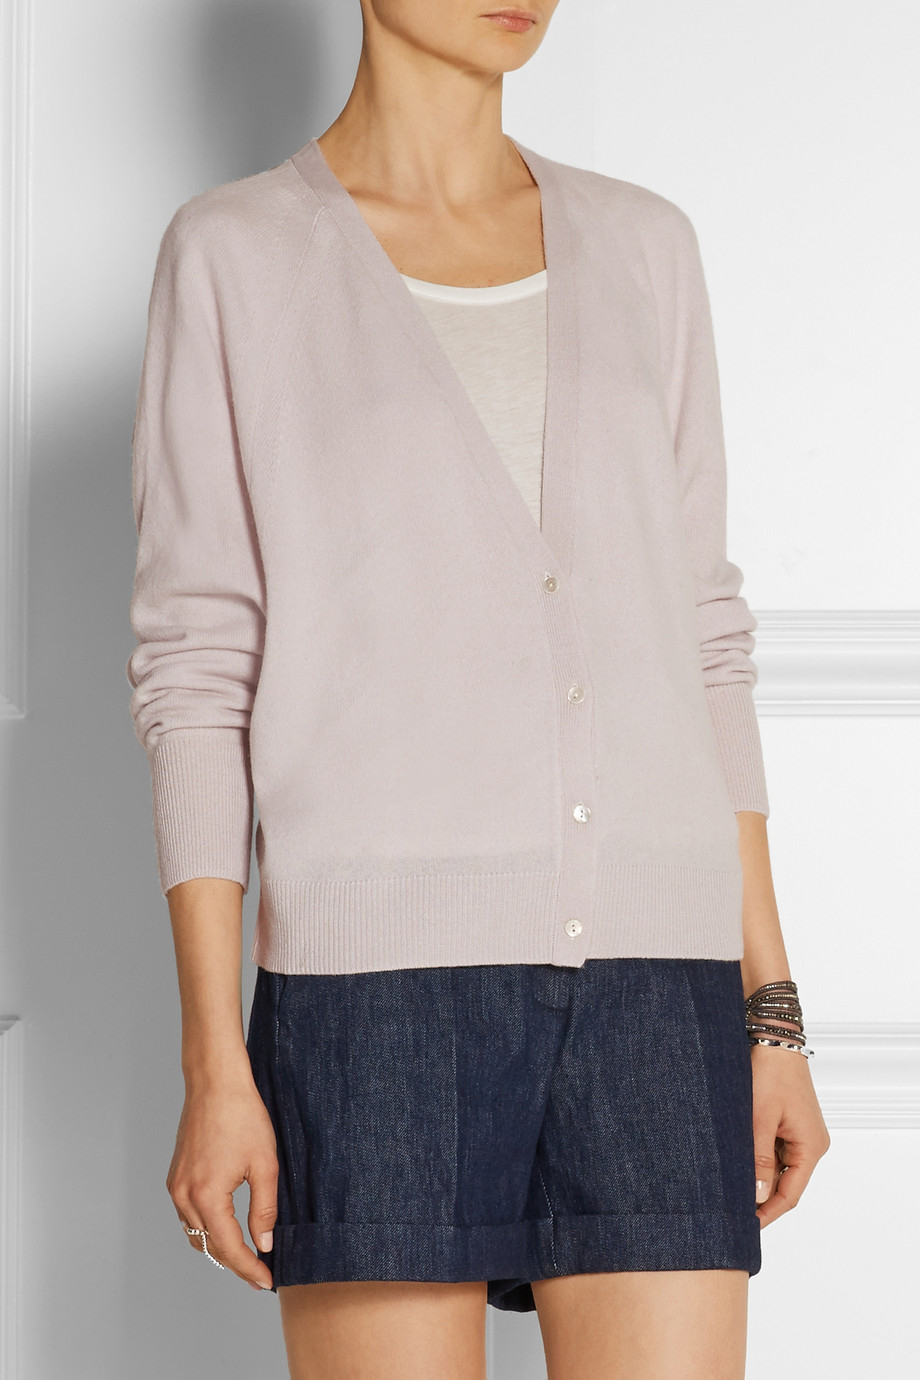 Duffy Cropped Cashmere Cardigan in Brown   Lyst